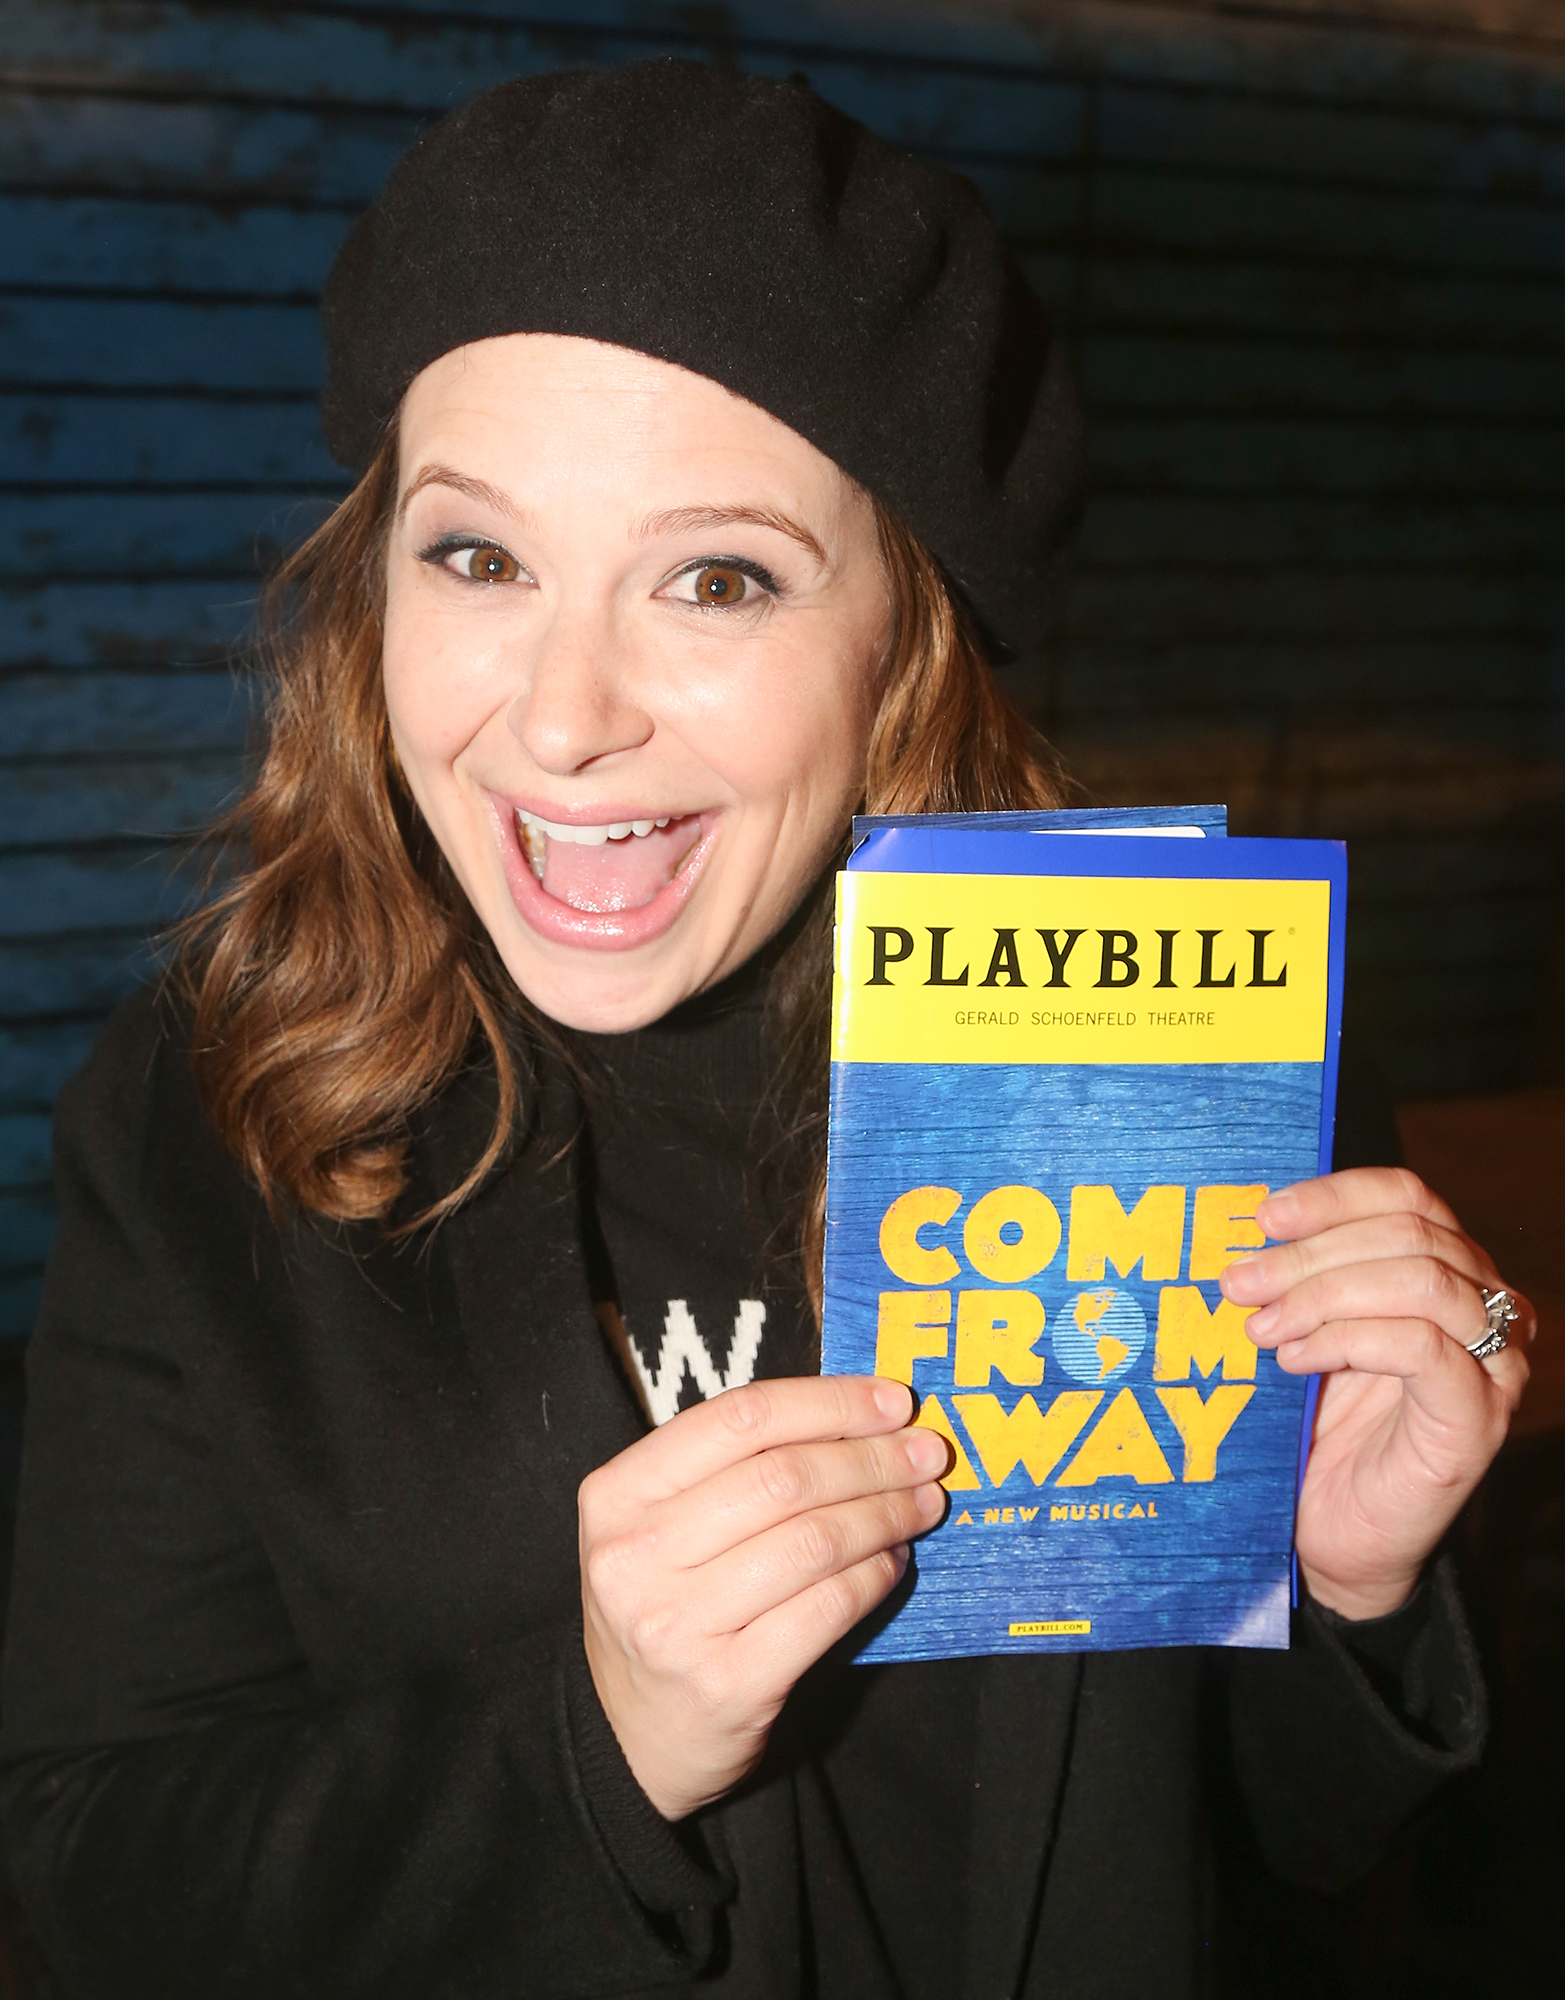 Celebrities Visit Broadway - January 30, 2018